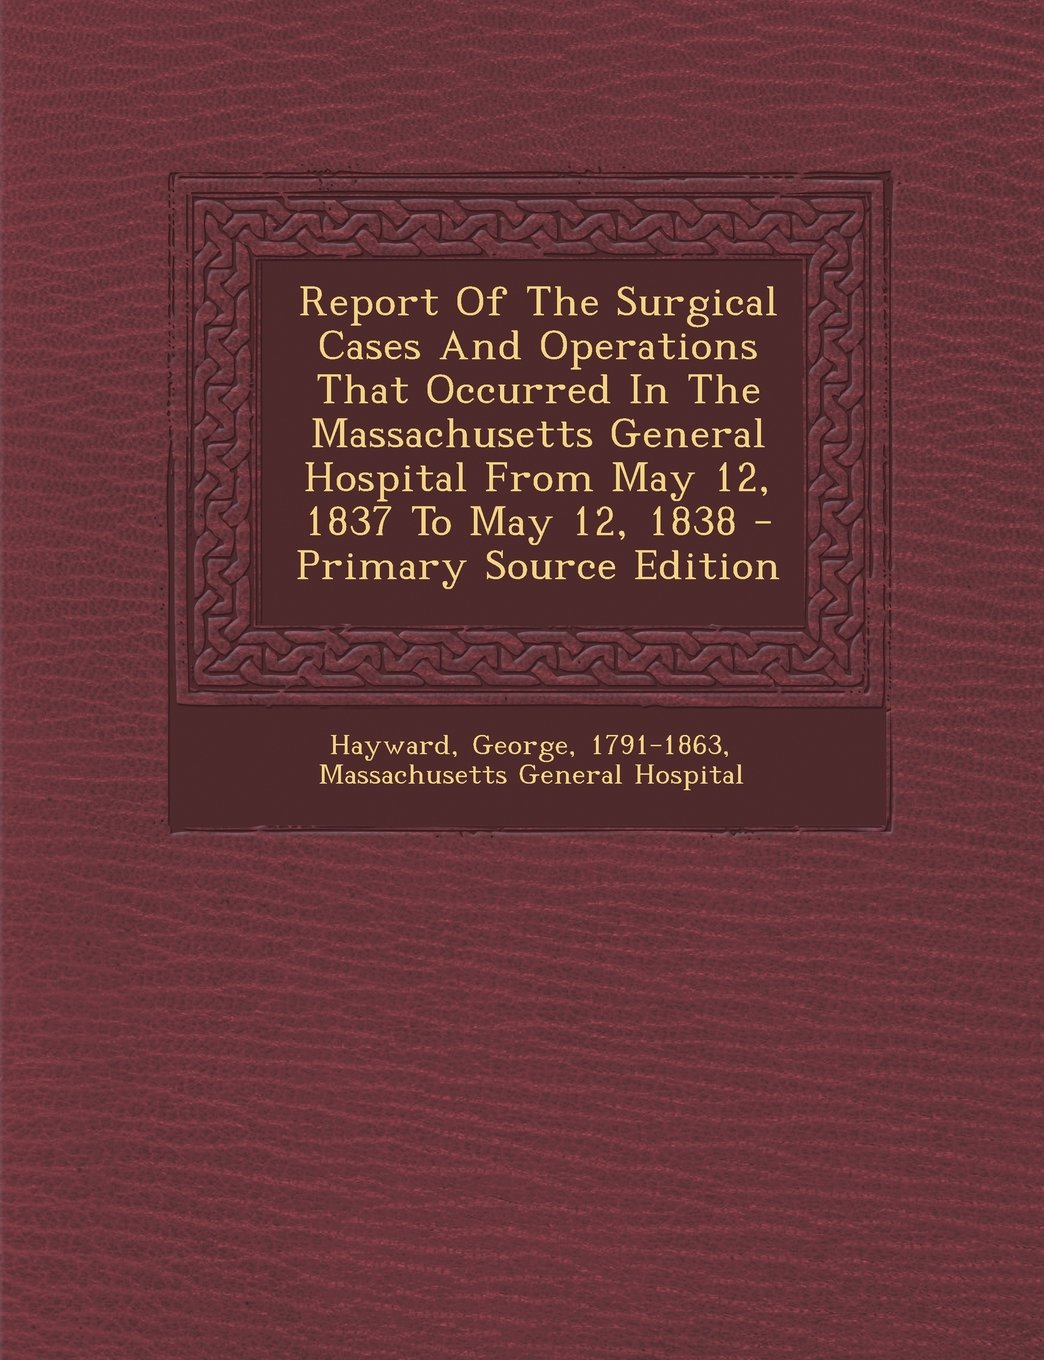 Read Online Report Of The Surgical Cases And Operations That Occurred In The Massachusetts General Hospital From May 12, 1837 To May 12, 1838 - Primary Source Edition pdf epub